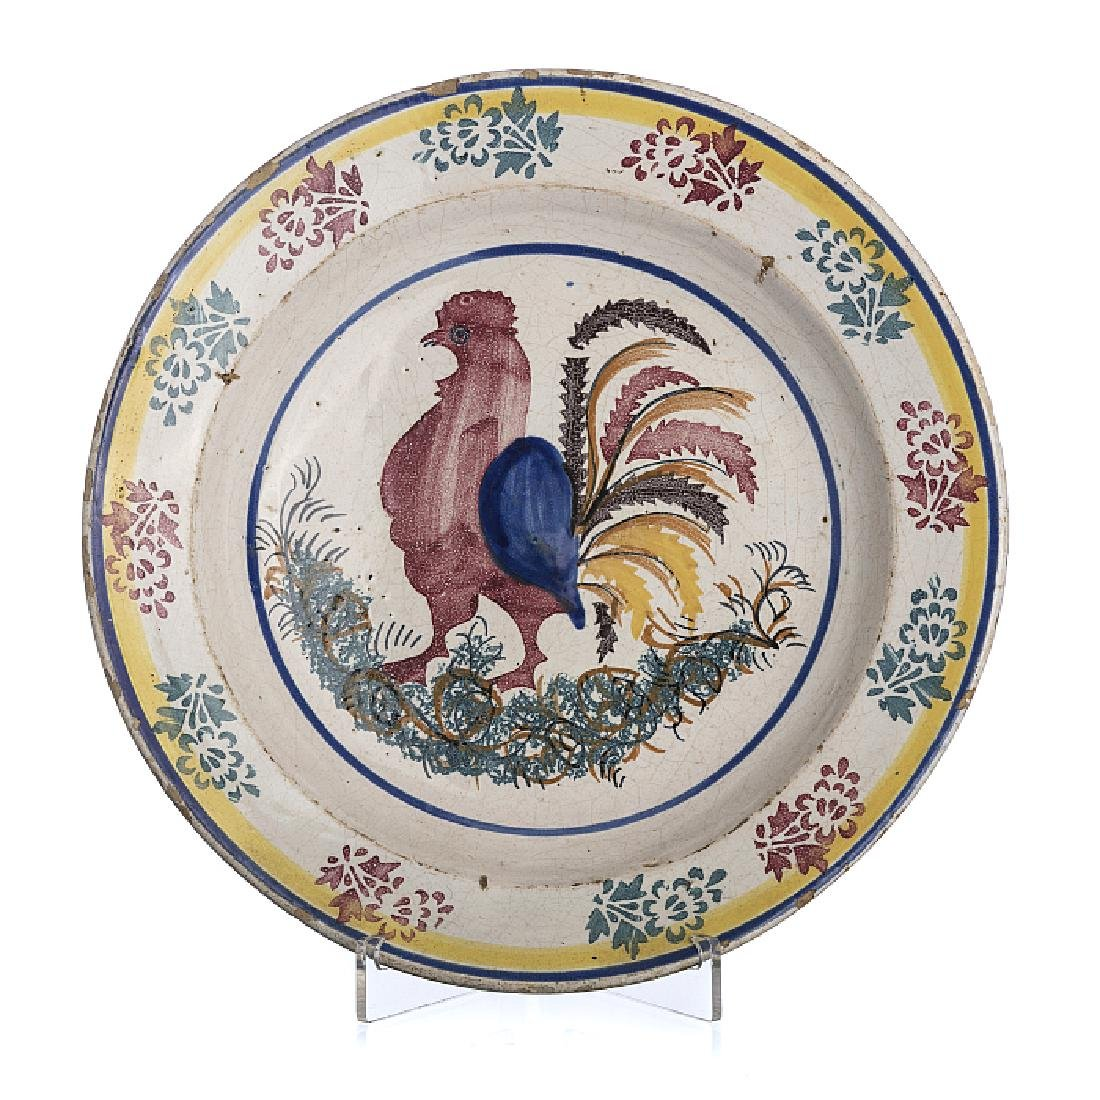 Rooster plate in faience